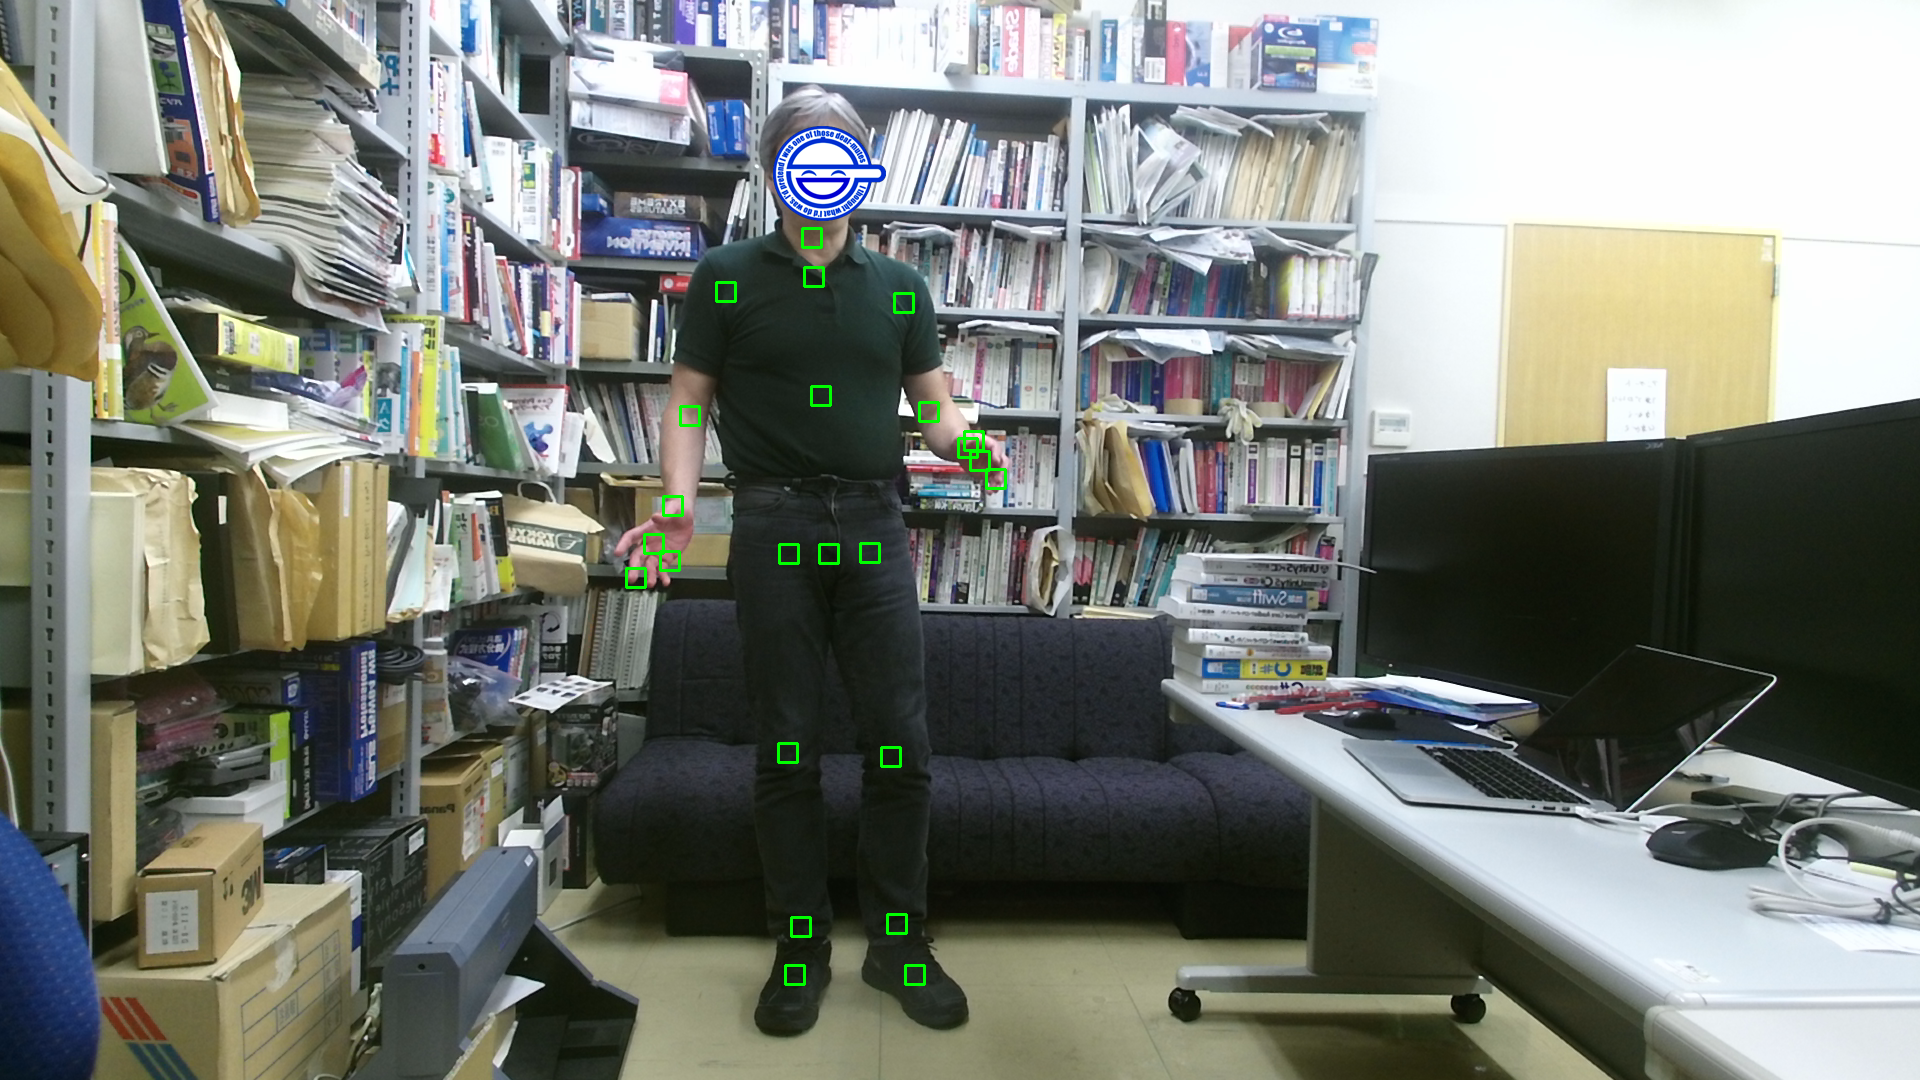 NtKinect: Kinect V2 C++ Programming with OpenCV on Windows10